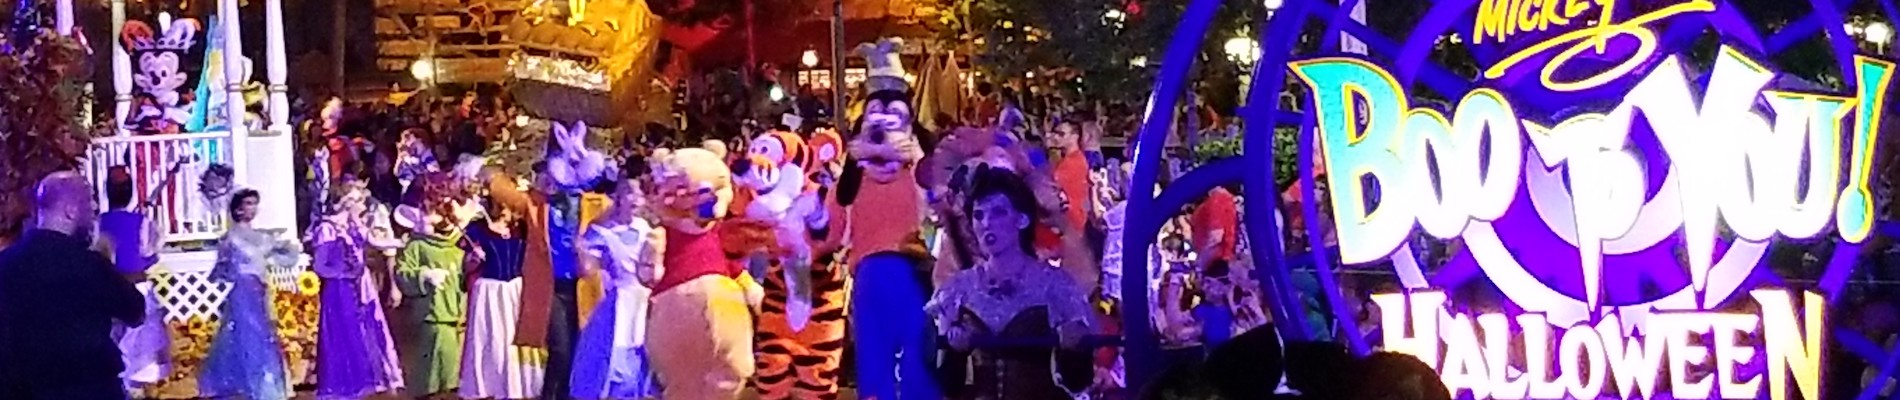 mickeys not so scary halloween party at disney world